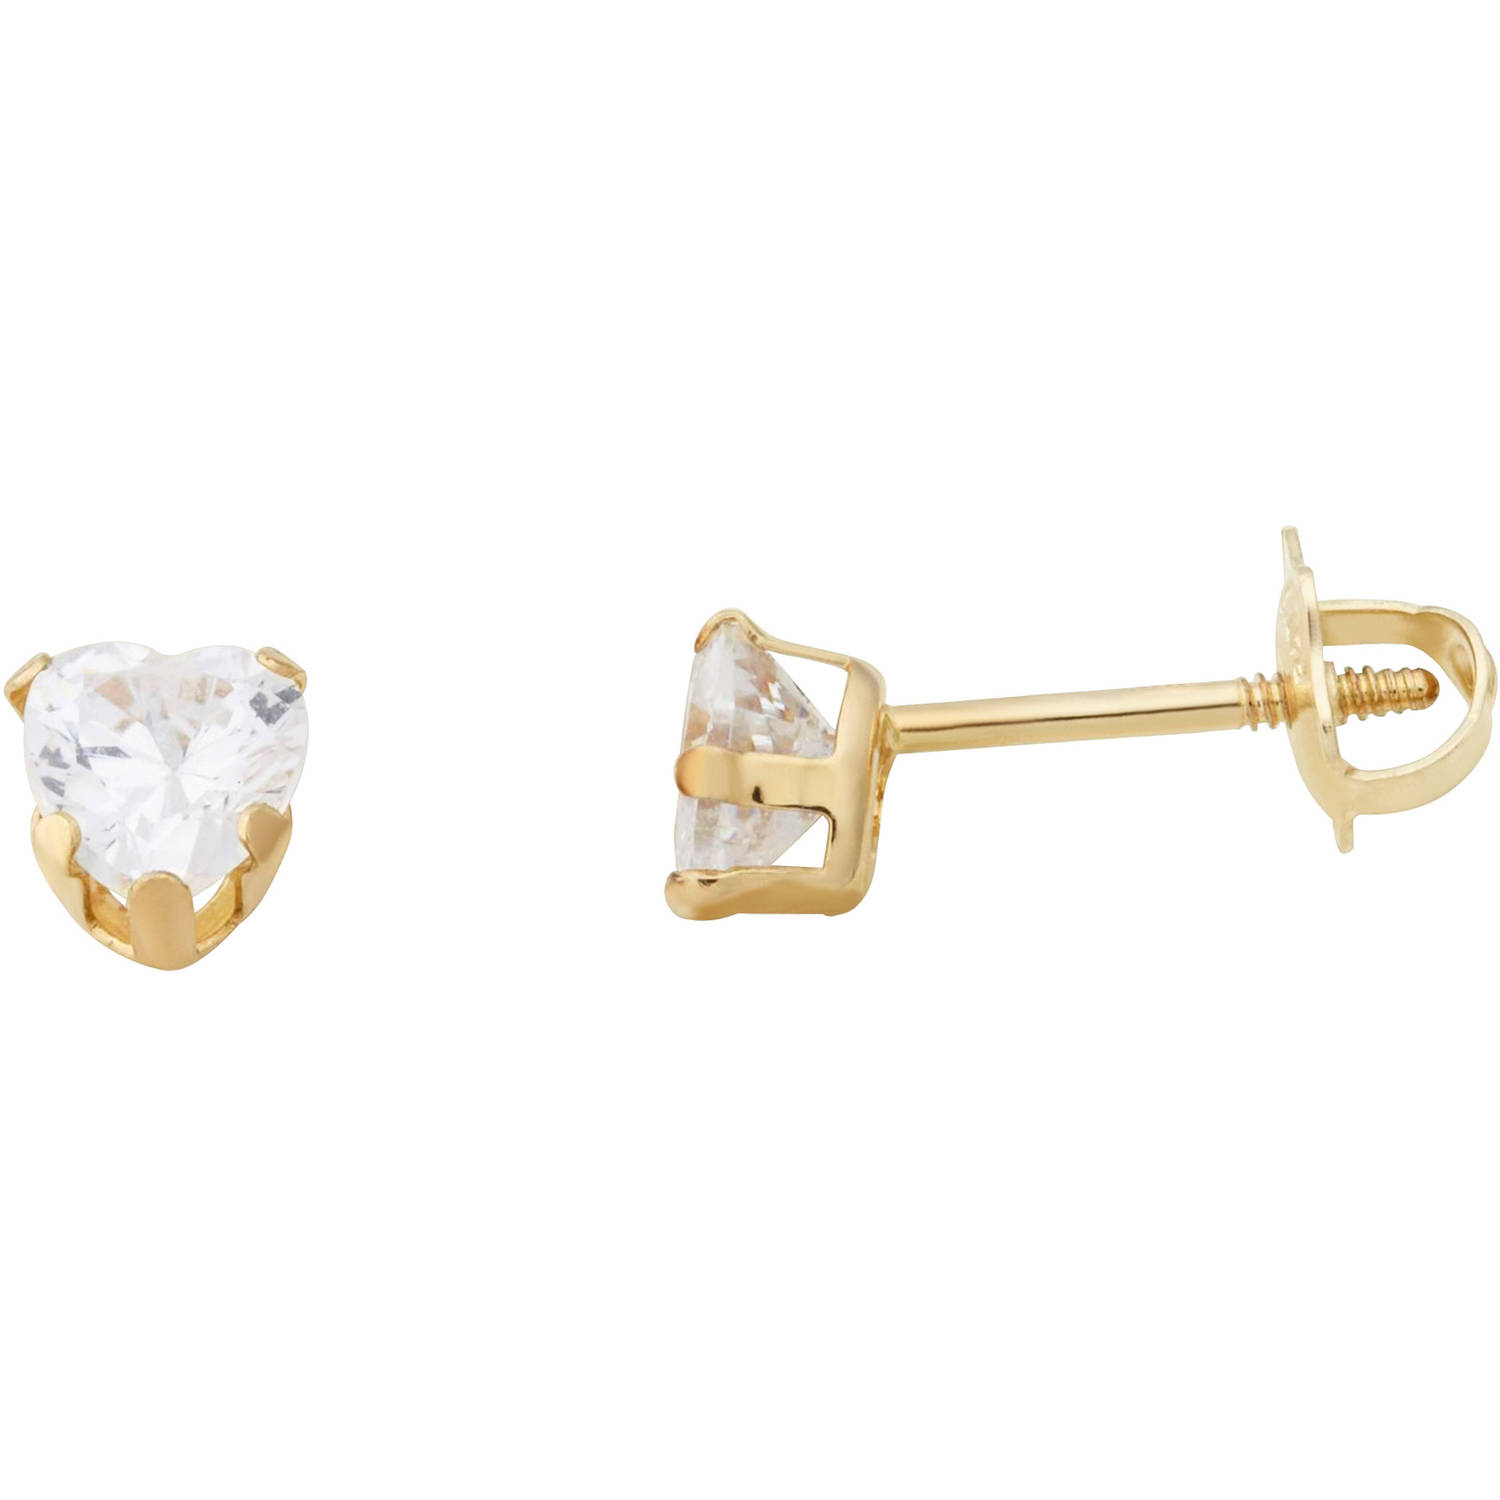 Simply Gold Kids' 10kt Yellow Gold 4mm CZ Heart Stud Earrings